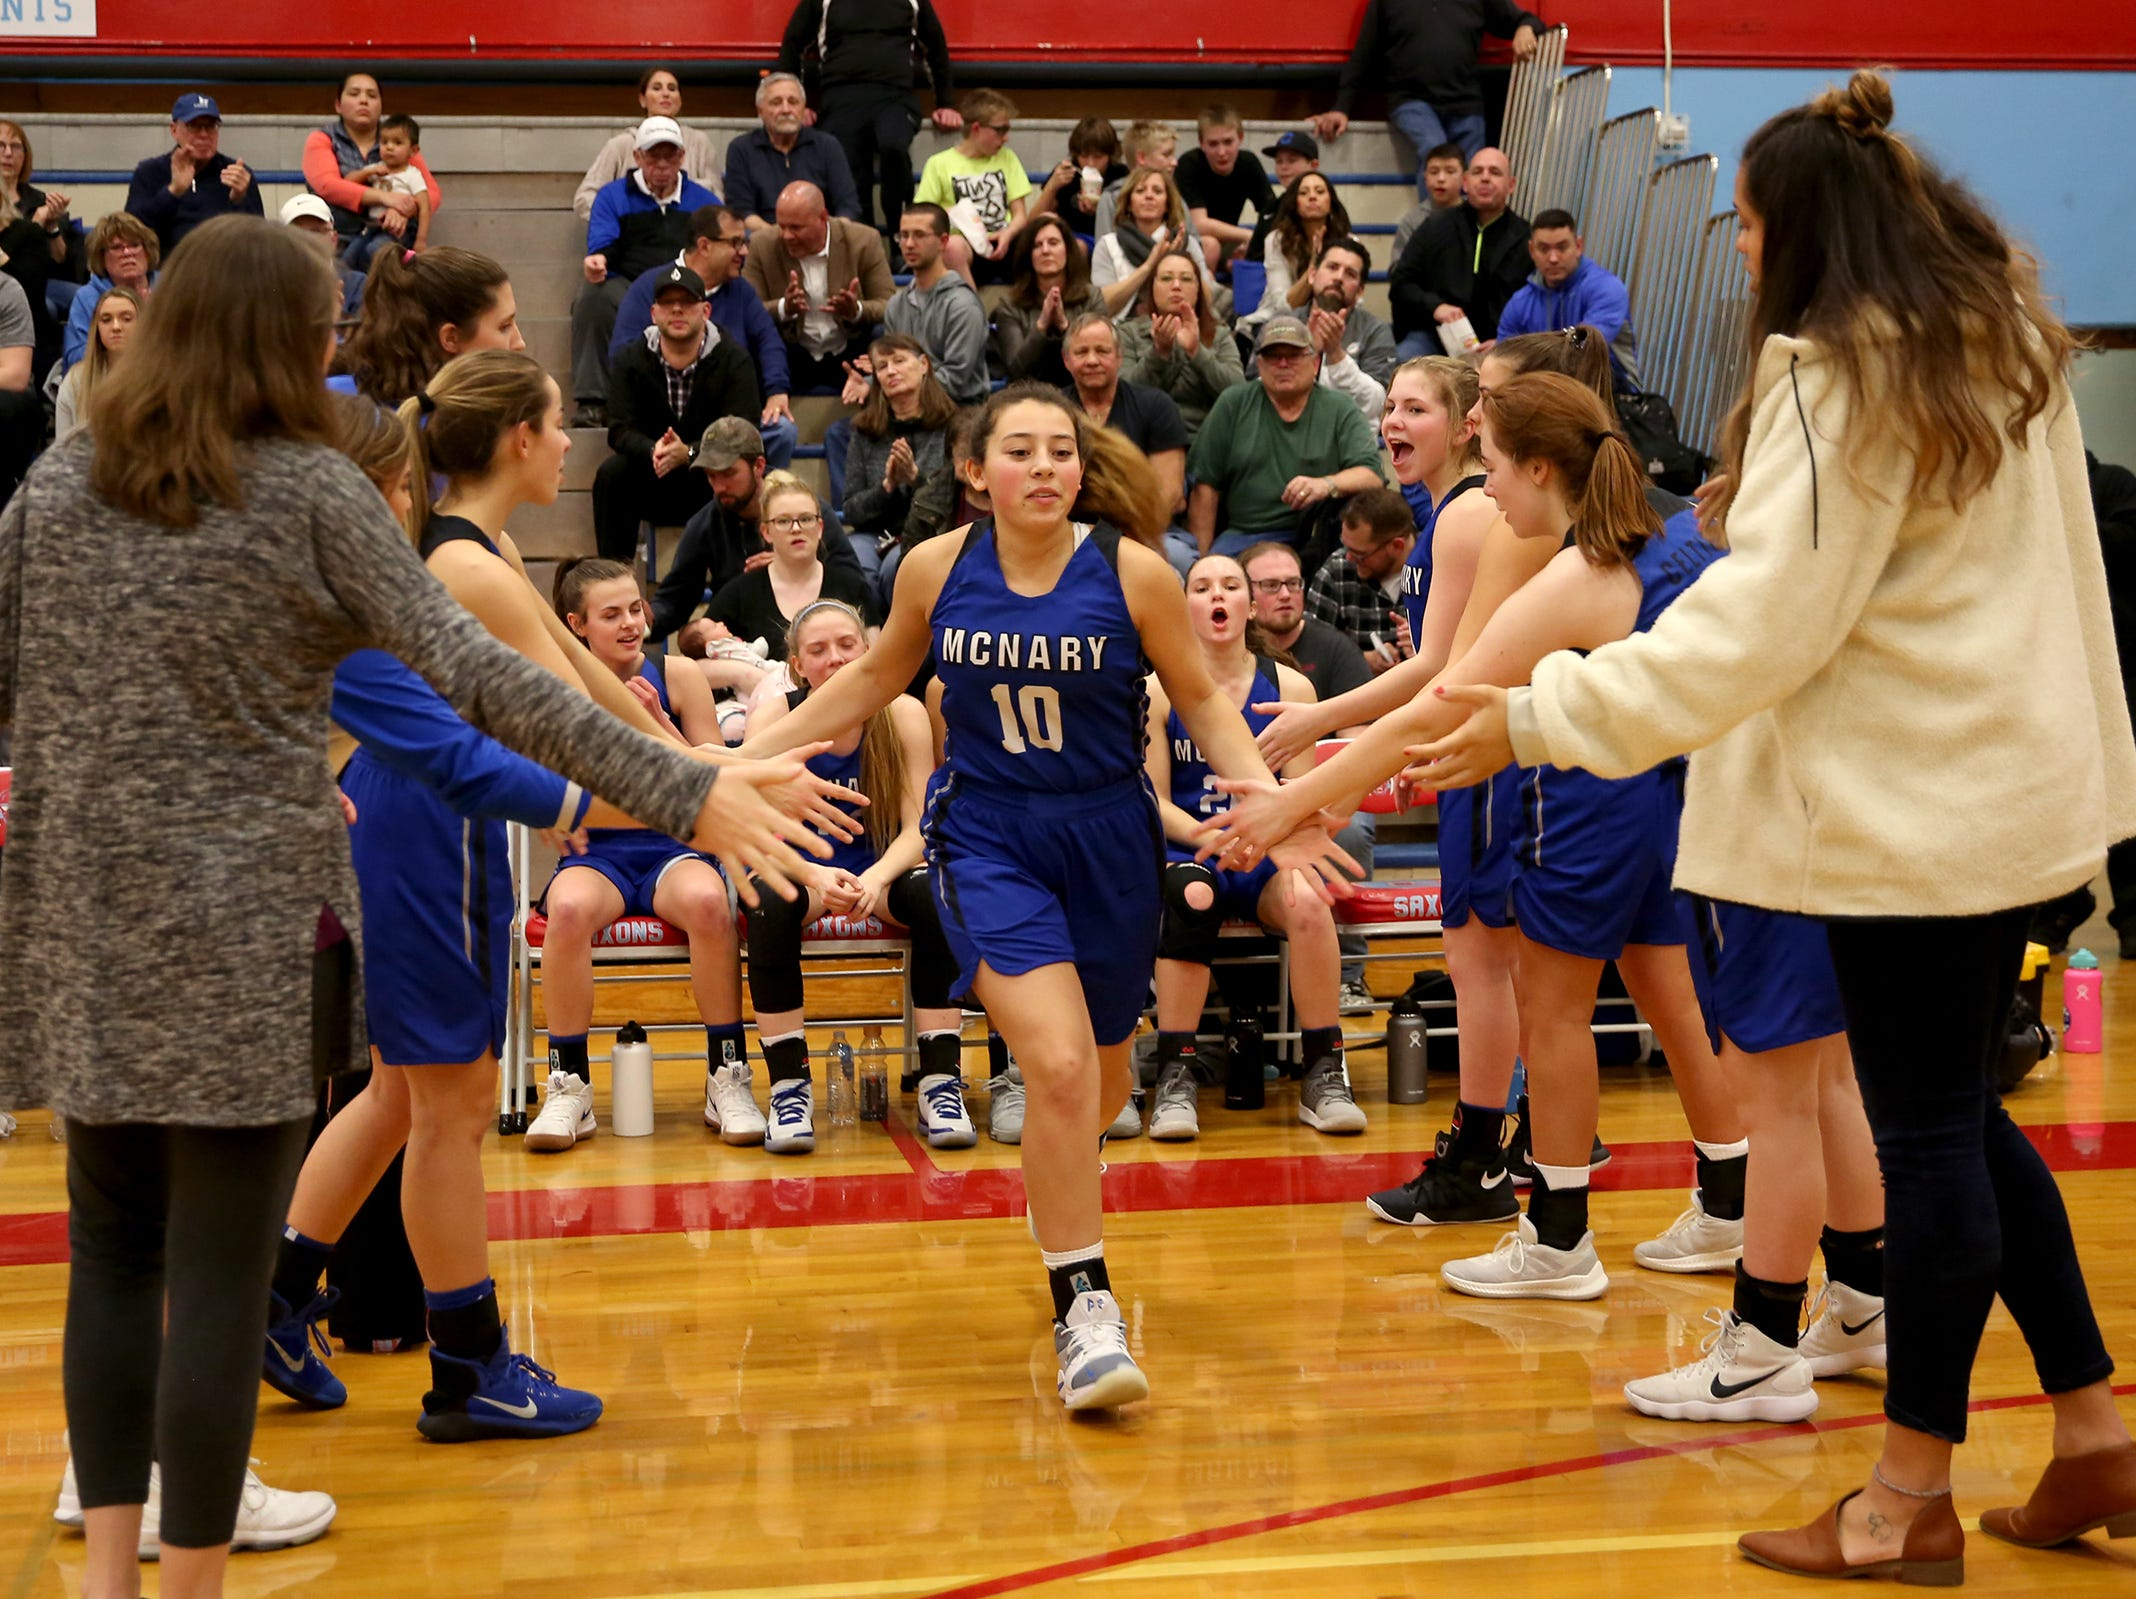 McNary's Sabella Alfaro (10) is introduced in the starting lineup before the South Salem High School girls basketball game against McNary High School in Salem on Thursday, Jan. 31, 2019.